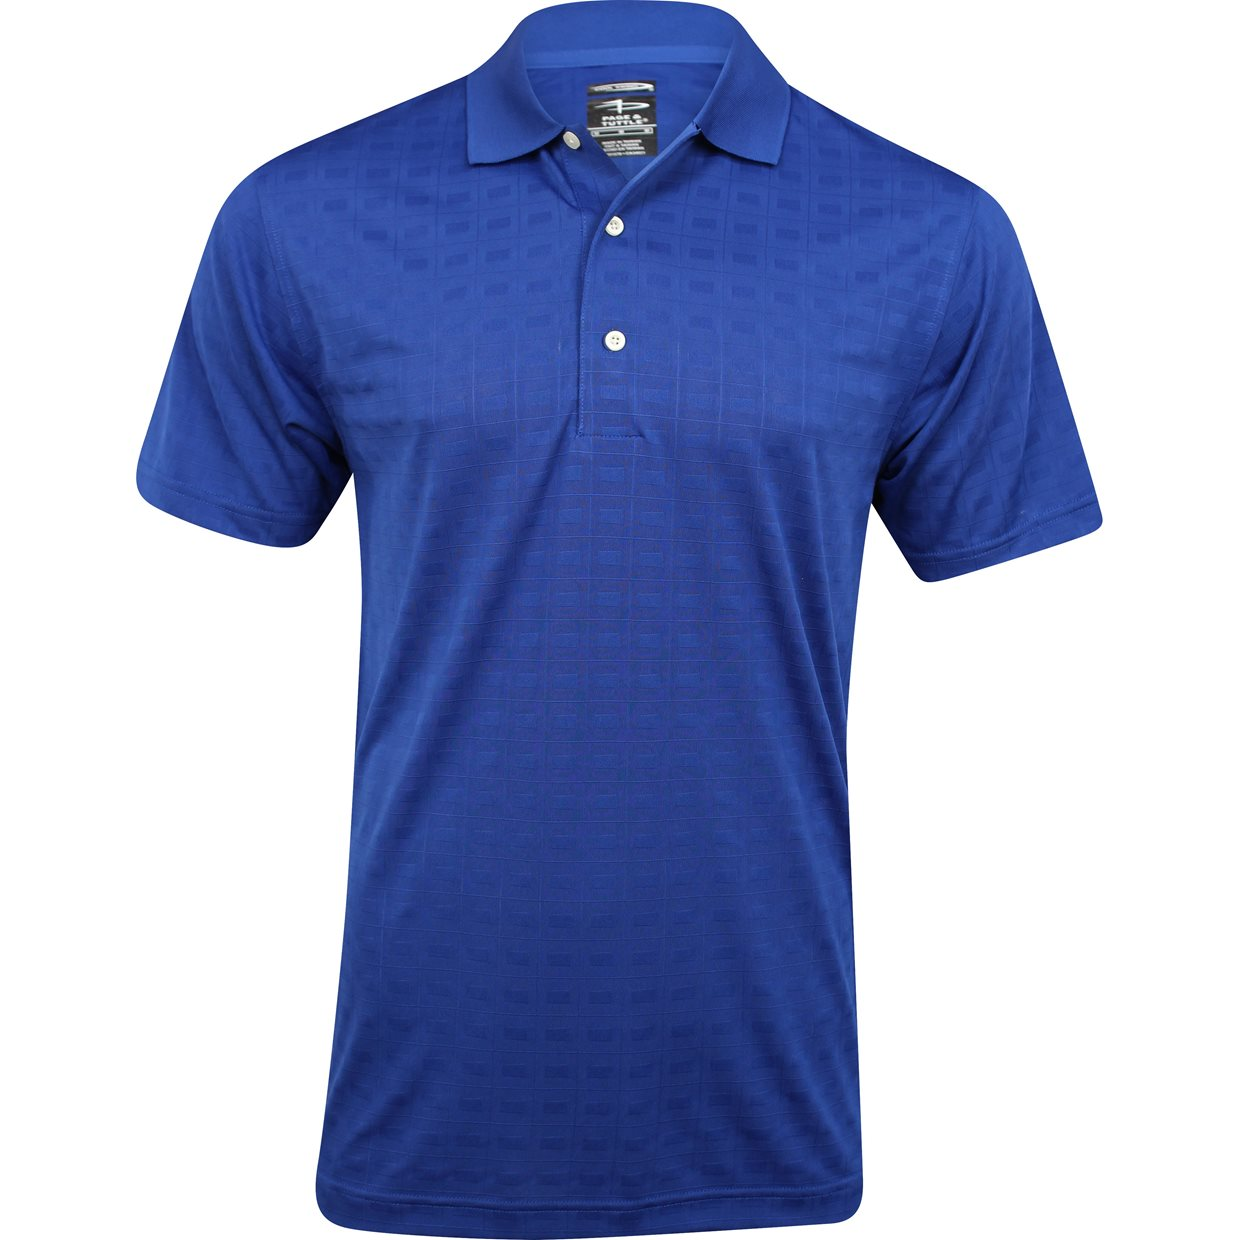 Page Tuttle Texture Jacquard Jersey Shirt Apparel At